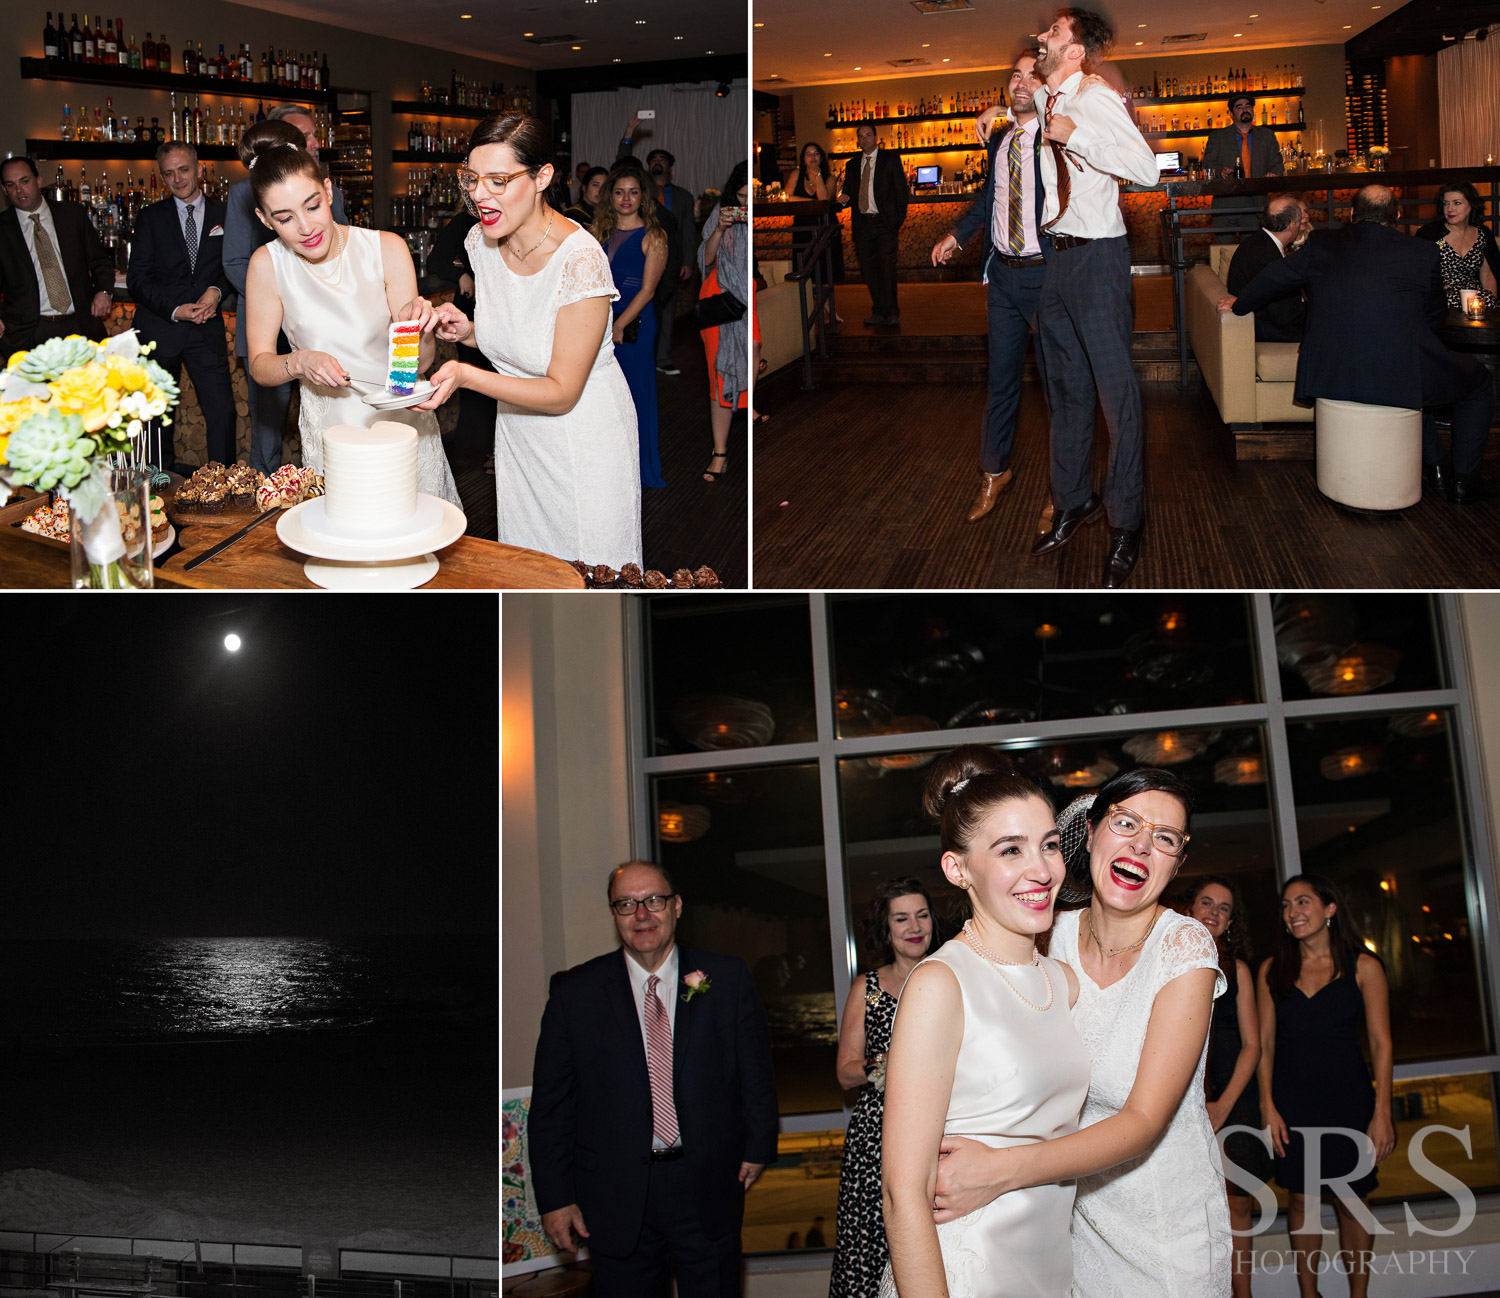 15_srs_photography_sara_stadtmiller_asbury_park_wedding_photography_nj_wedding_photographer_monmouth_county_wedding_photographer_same_sex_marriage_gay_wedding_watermark_wedding